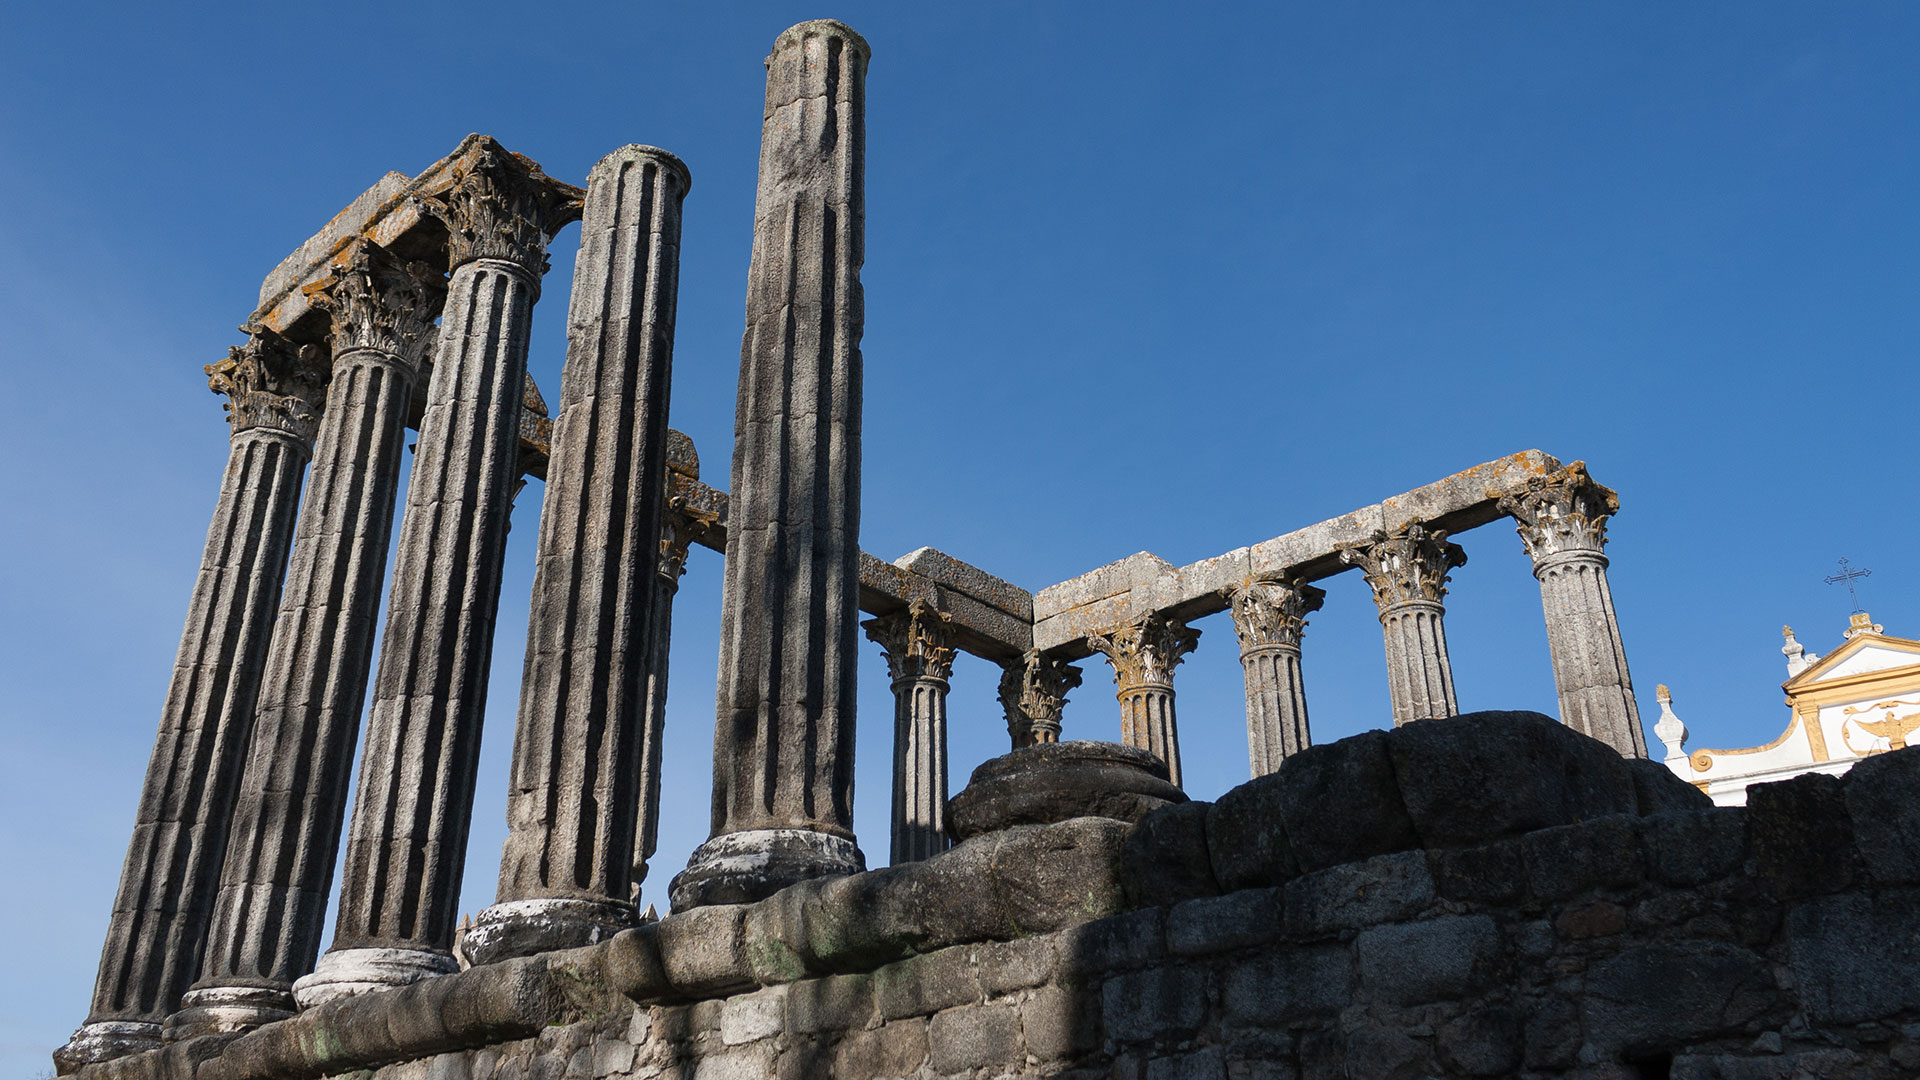 Roman temple | Day trips from Lisbon: Évora, more than a UNESCO World Heritage Site